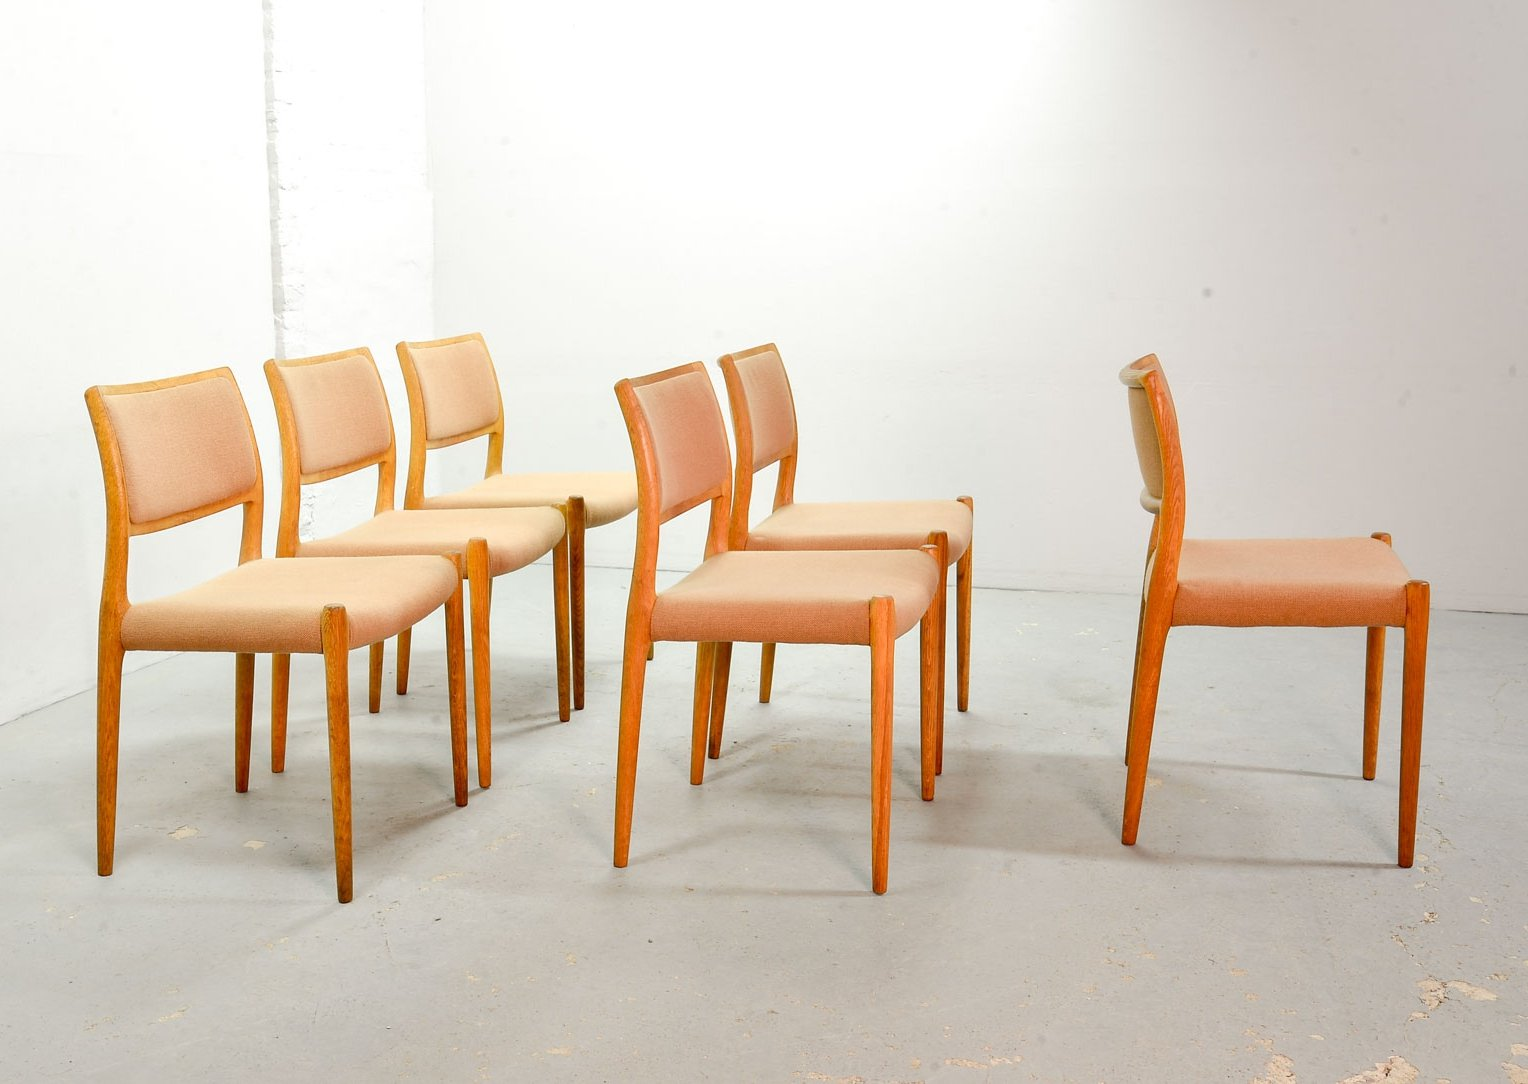 Astounding Set Of 6 Danish Design Niels Otto Moller Model 80 Dining Squirreltailoven Fun Painted Chair Ideas Images Squirreltailovenorg